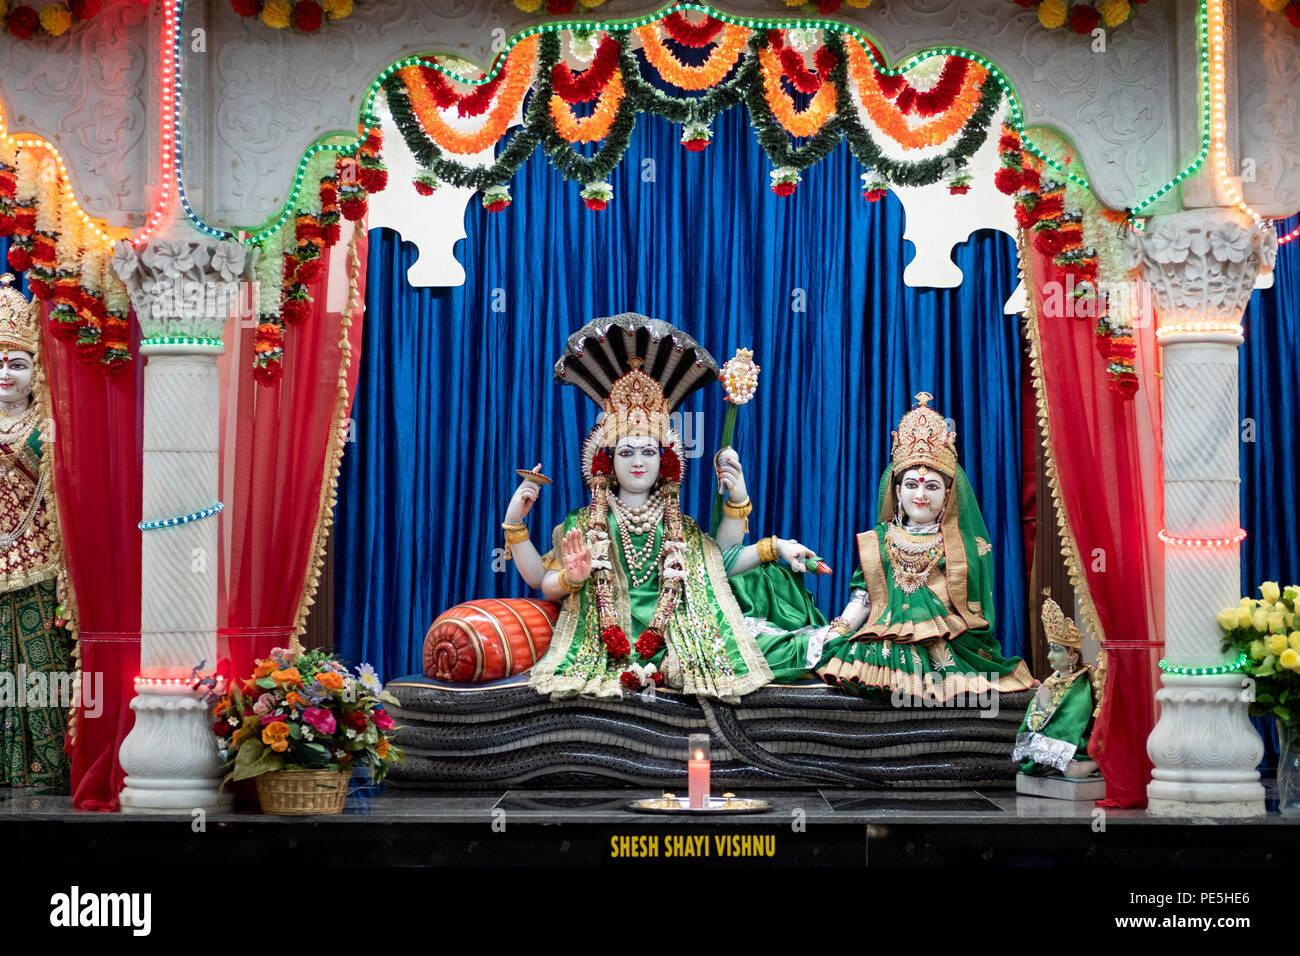 Statues of the Hindu deities Lakshmi and Narayan at a temple in Woodside, Queens, New York. - Stock Image